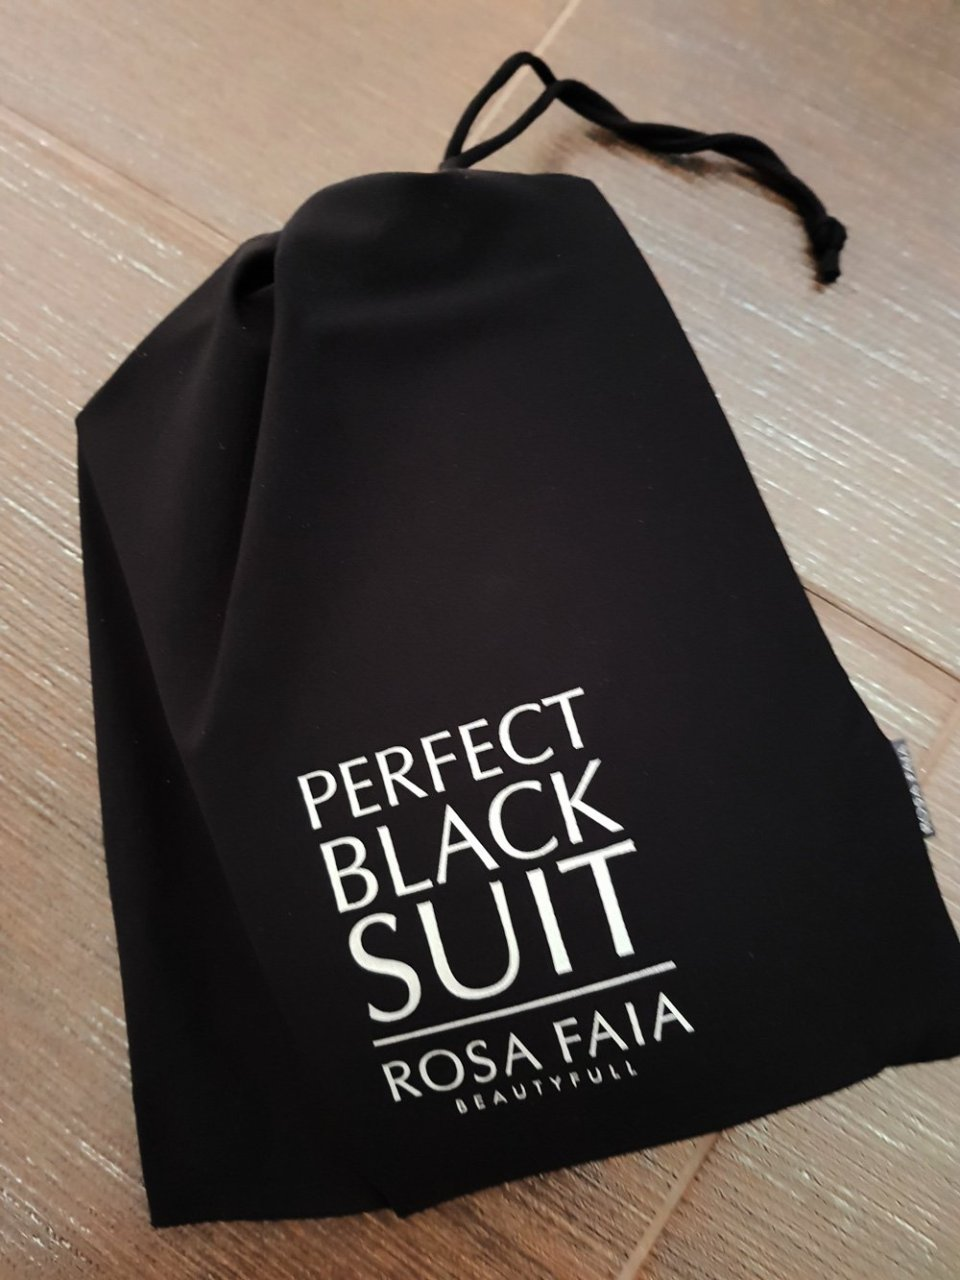 Conny Doll Lifestyle: Badeanzug, perfect black suit, rosa faia, swimwear, bademode, anita